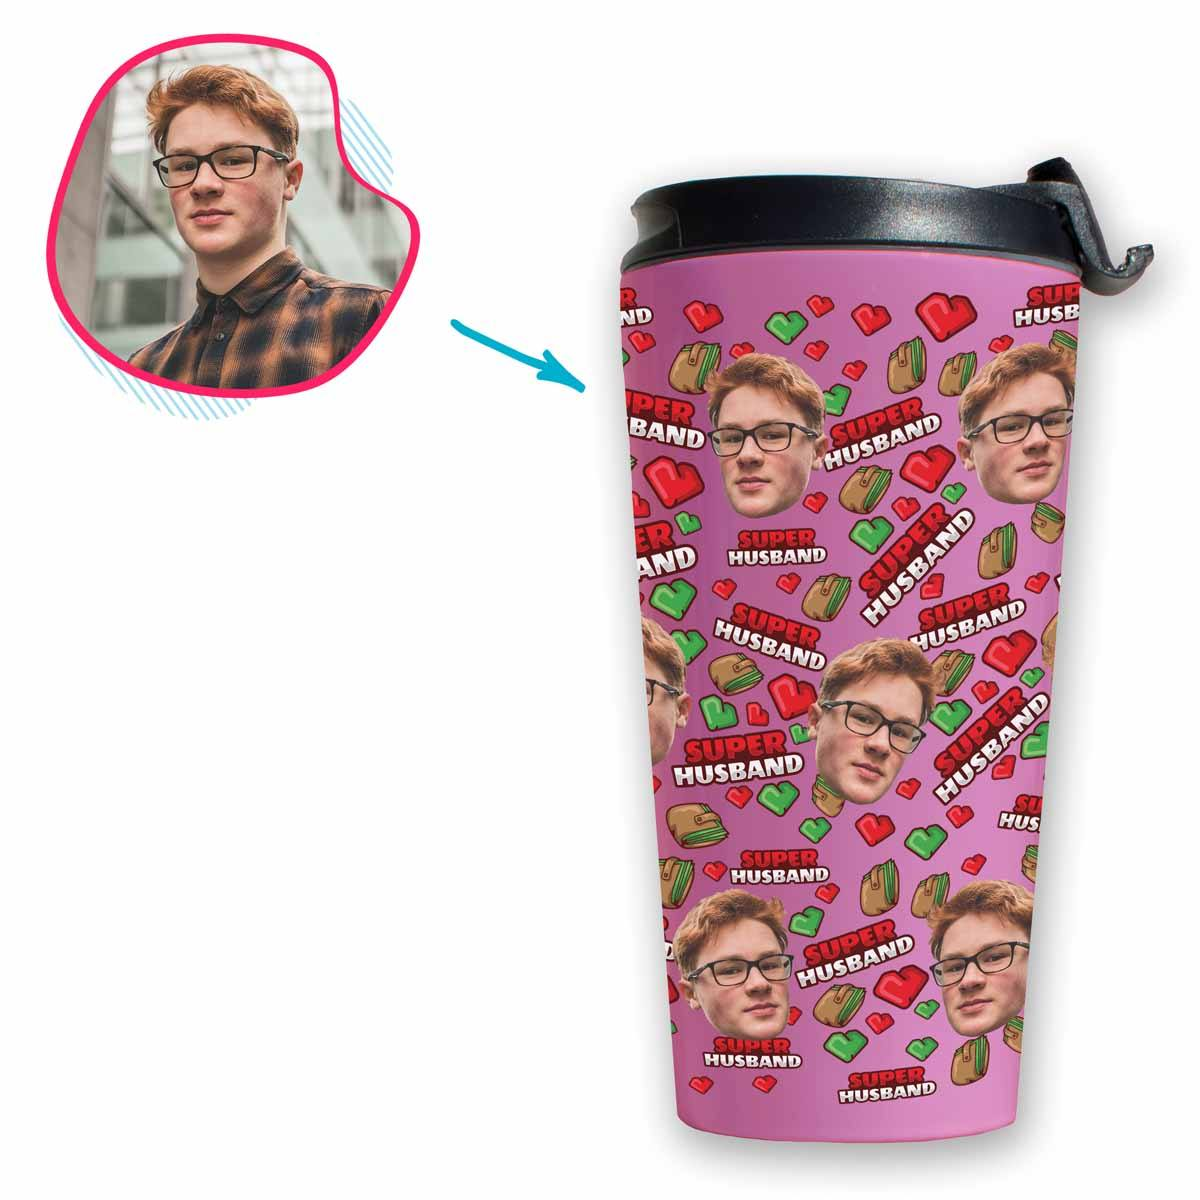 Pink Husband personalized travel mug with photo of face printed on it